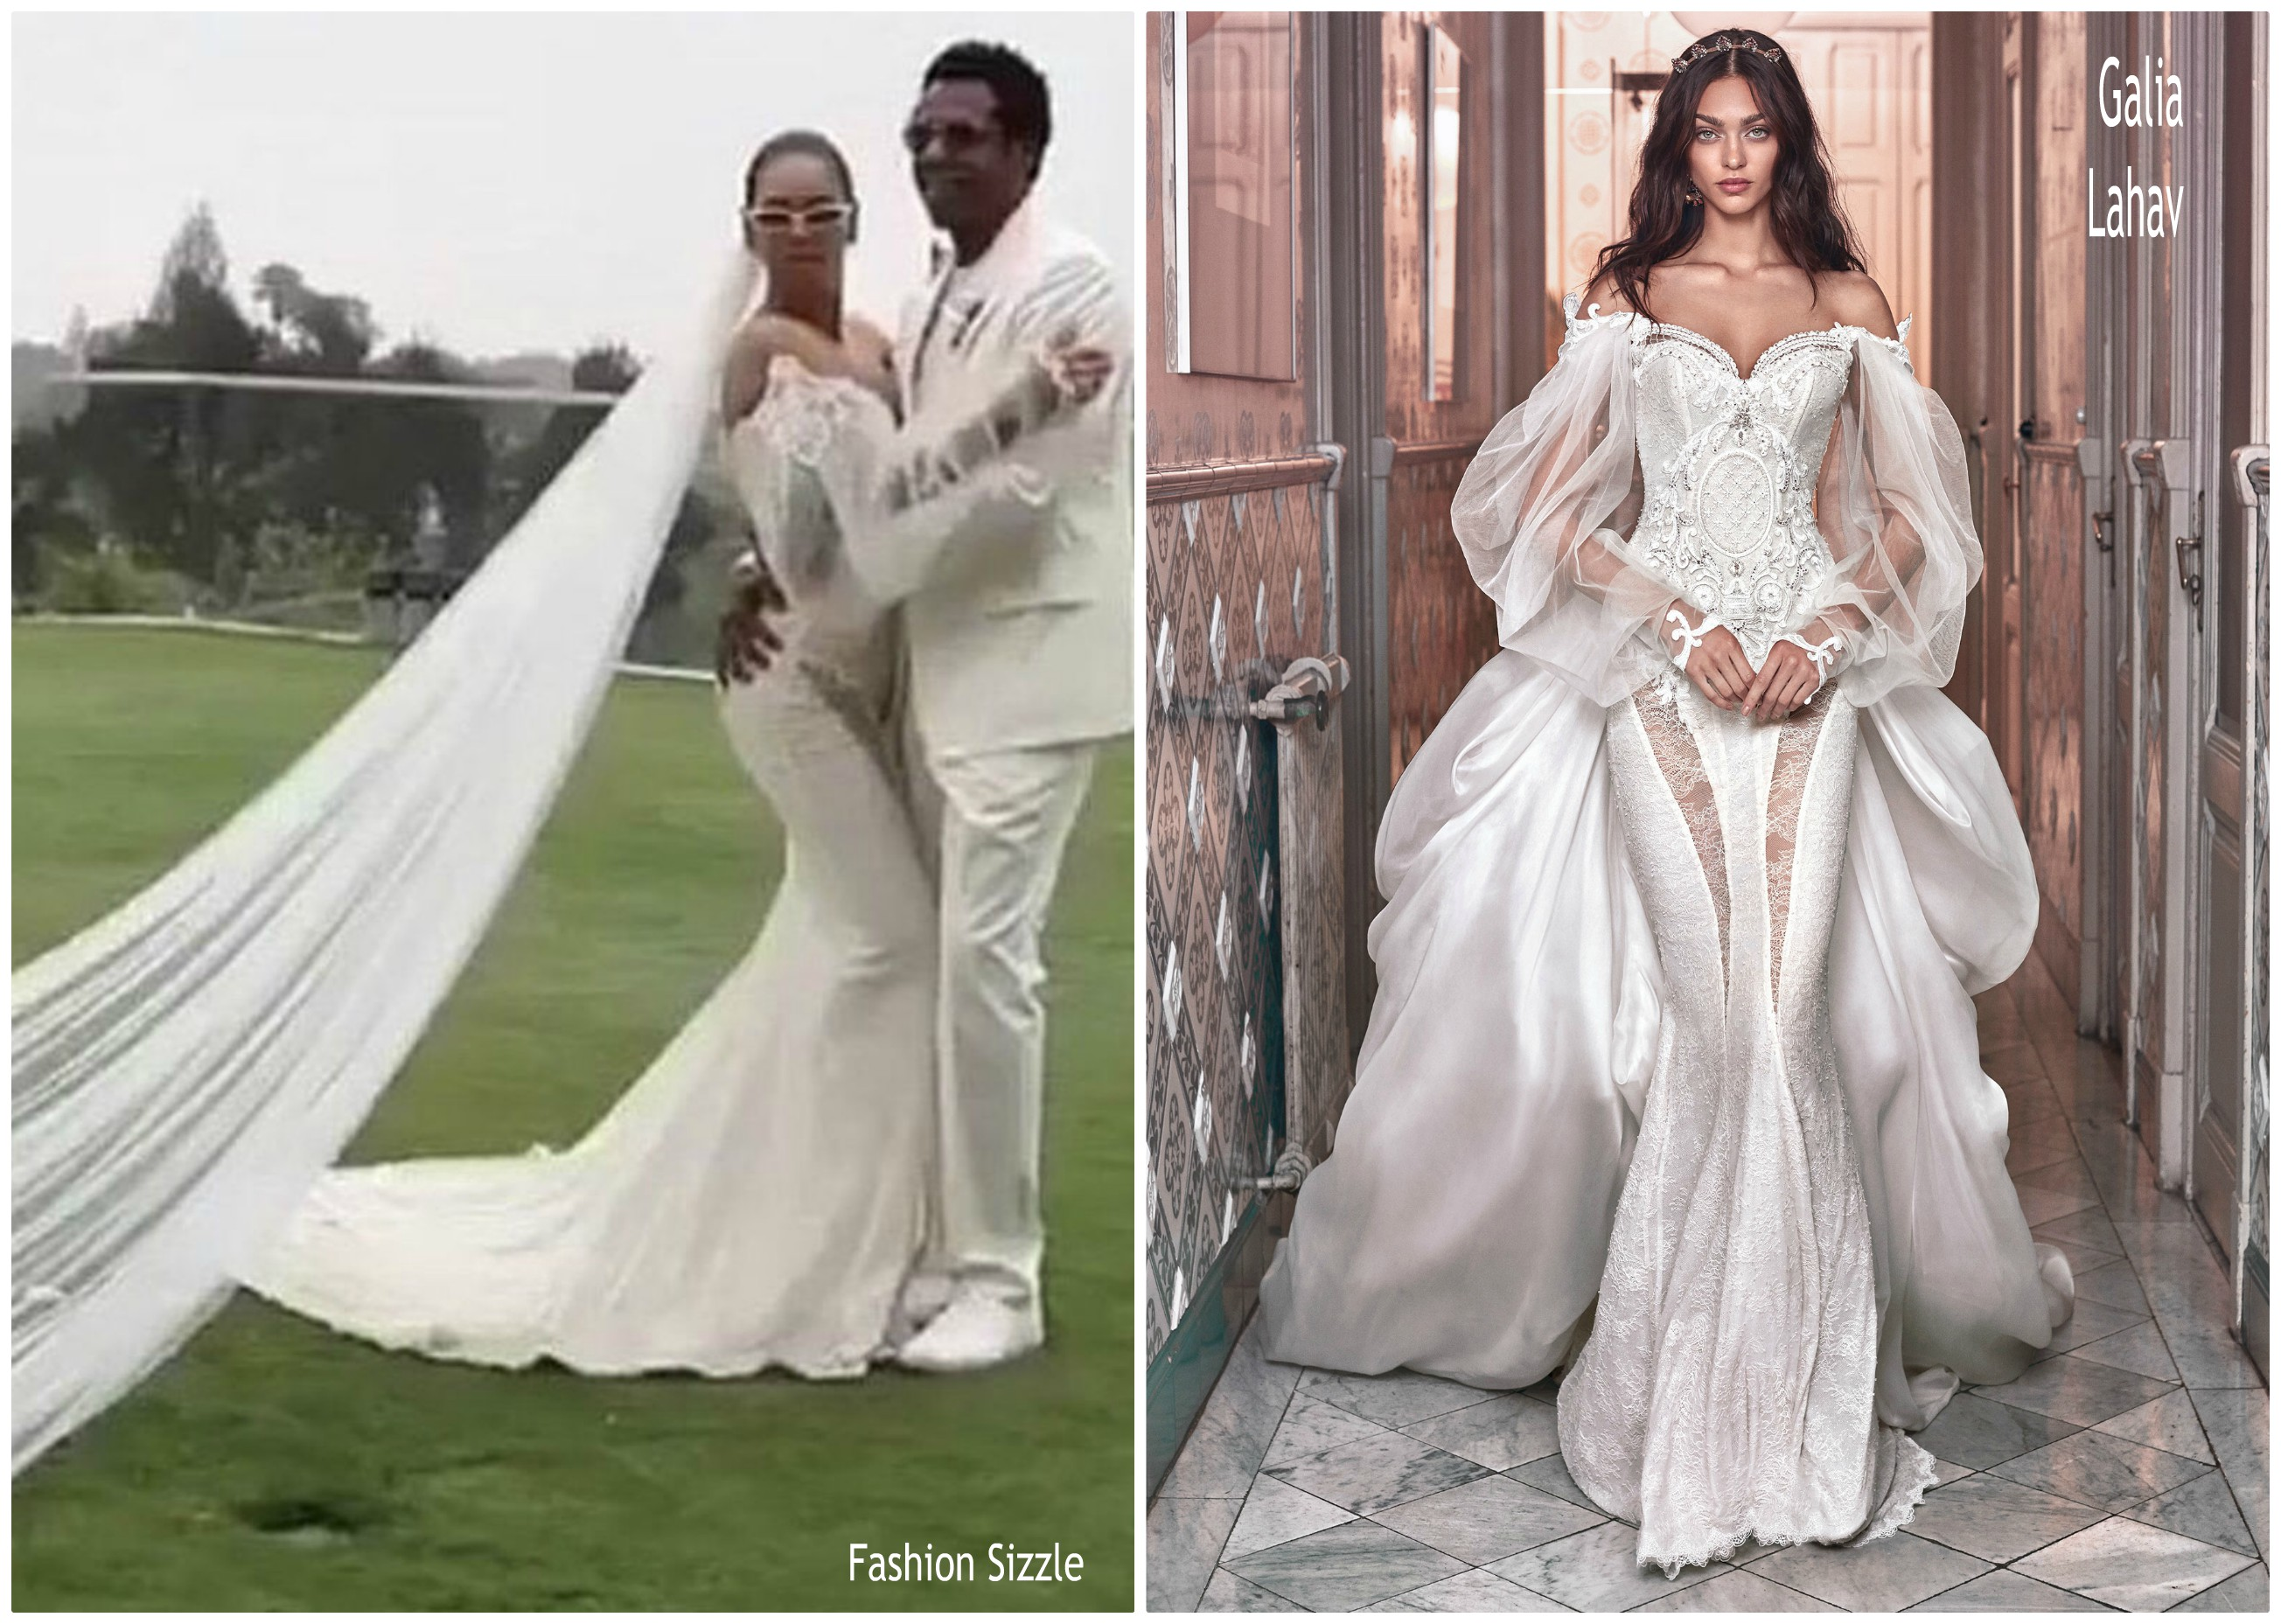 beyonce-knowles-in-galia-lahav-vow-renewal-ceremony-with-jayz-